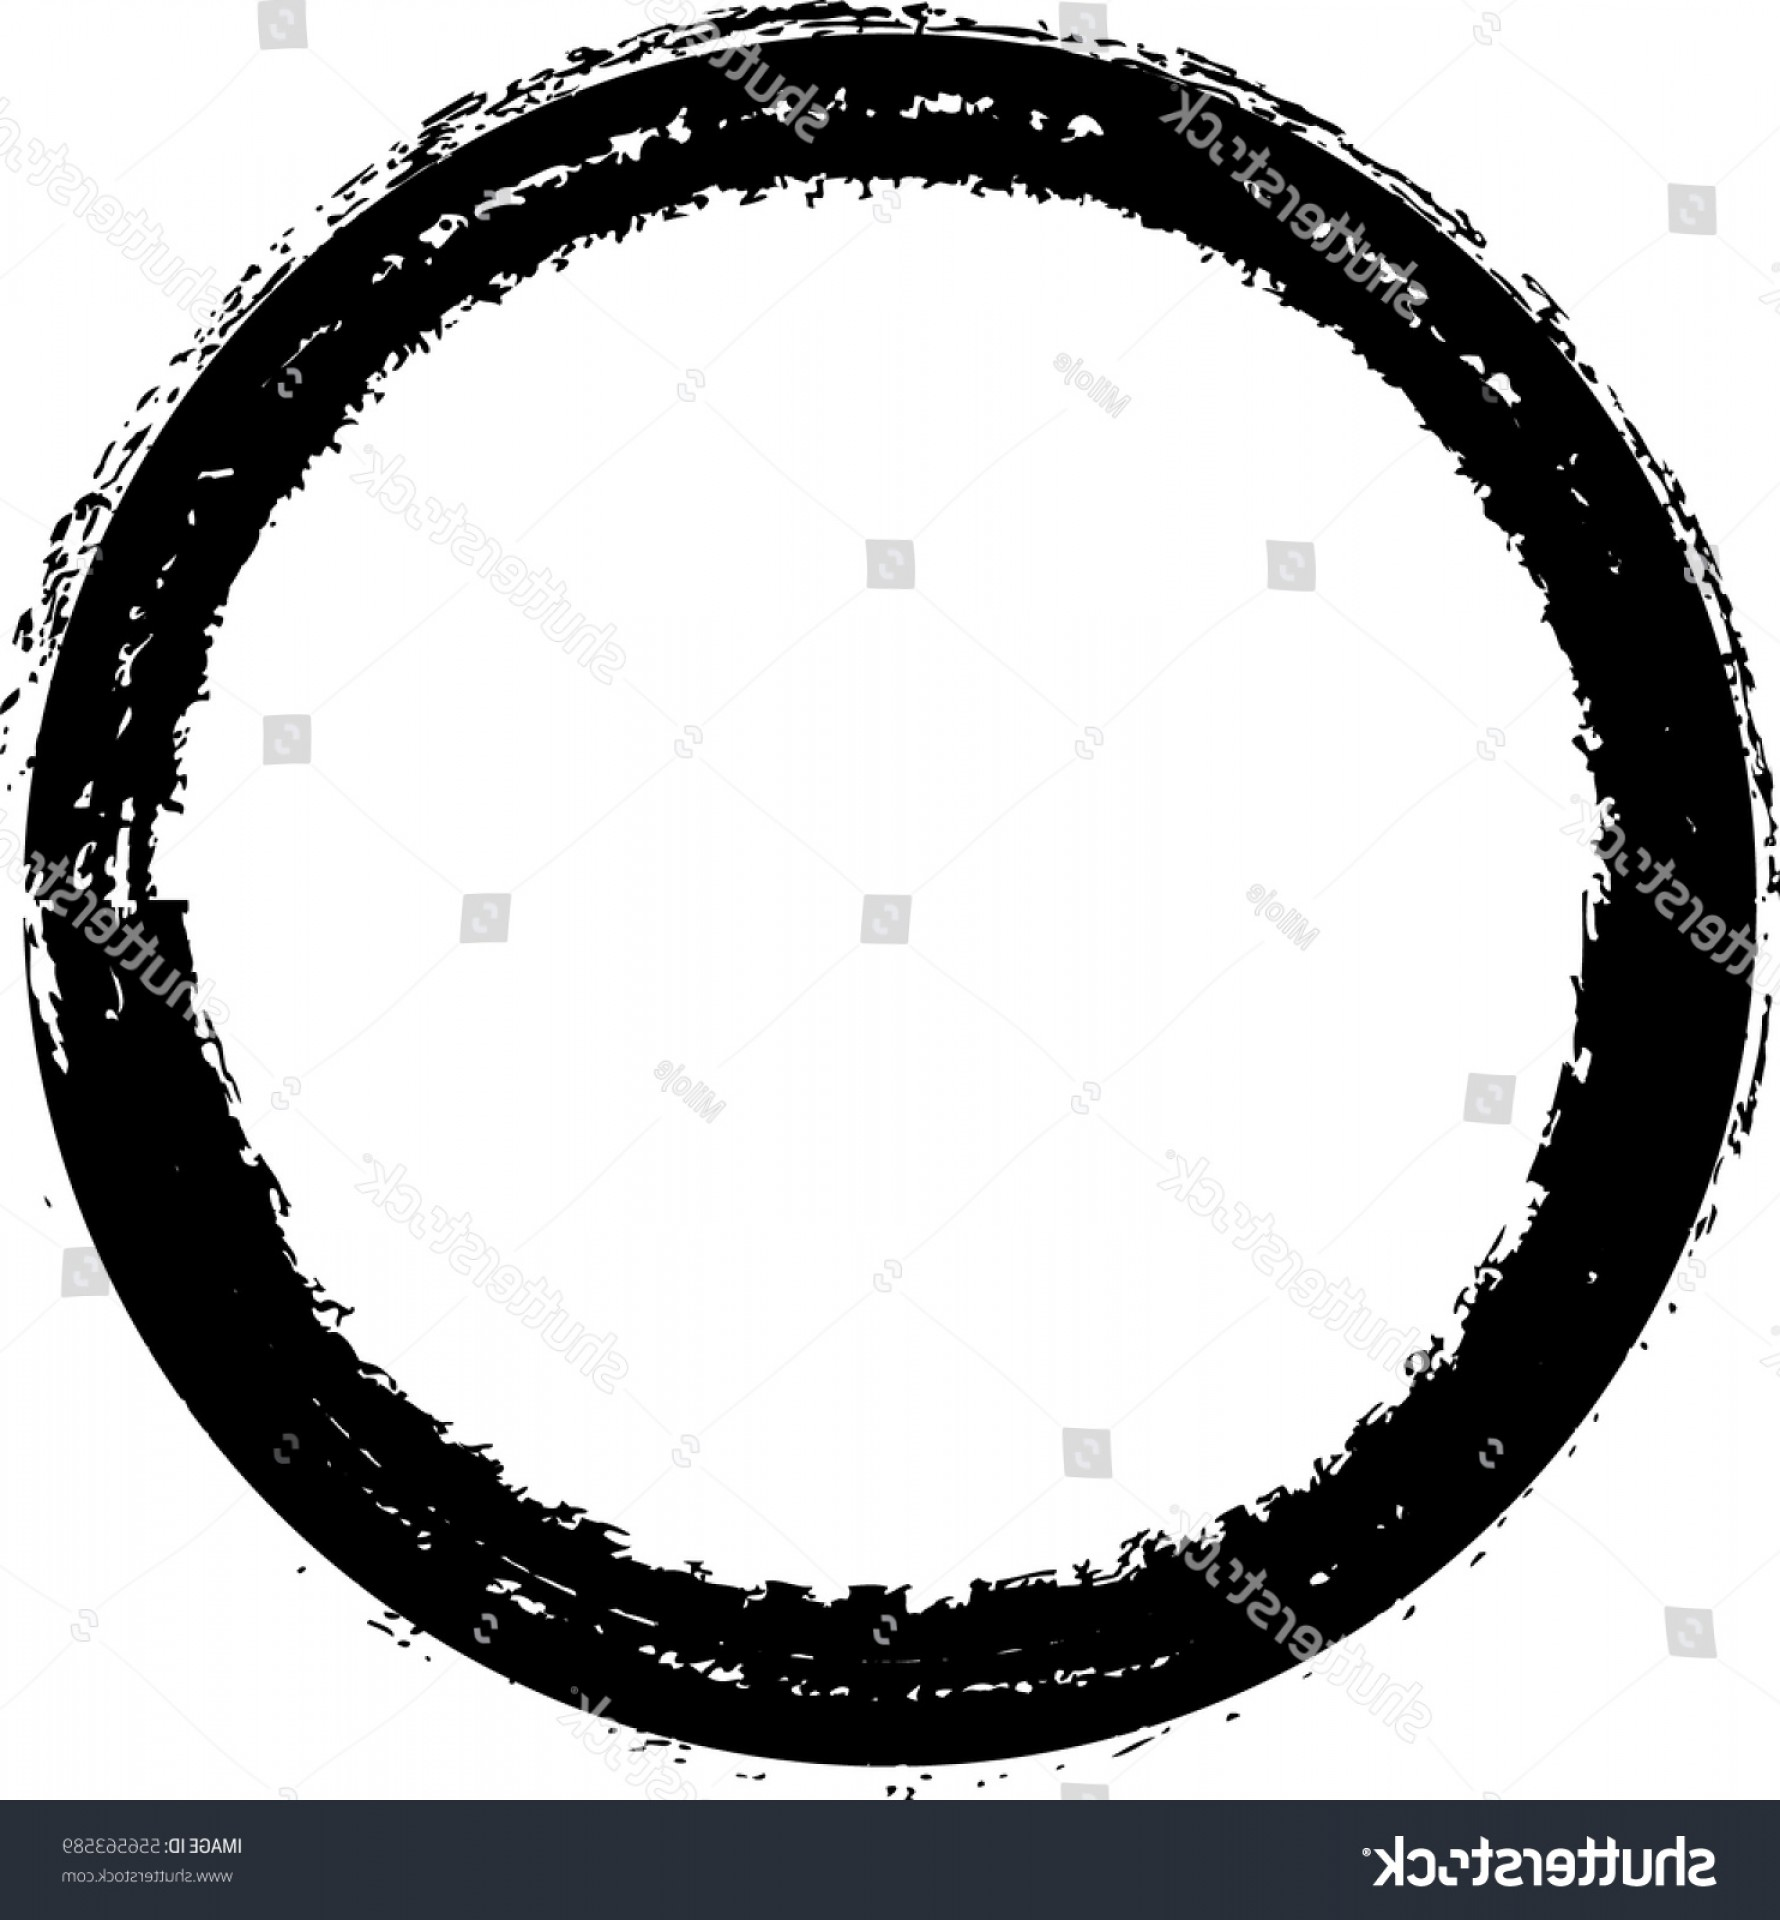 3 distressed ovals clipart picture royalty free library Distressed White Circle Vector | HandandBeak picture royalty free library